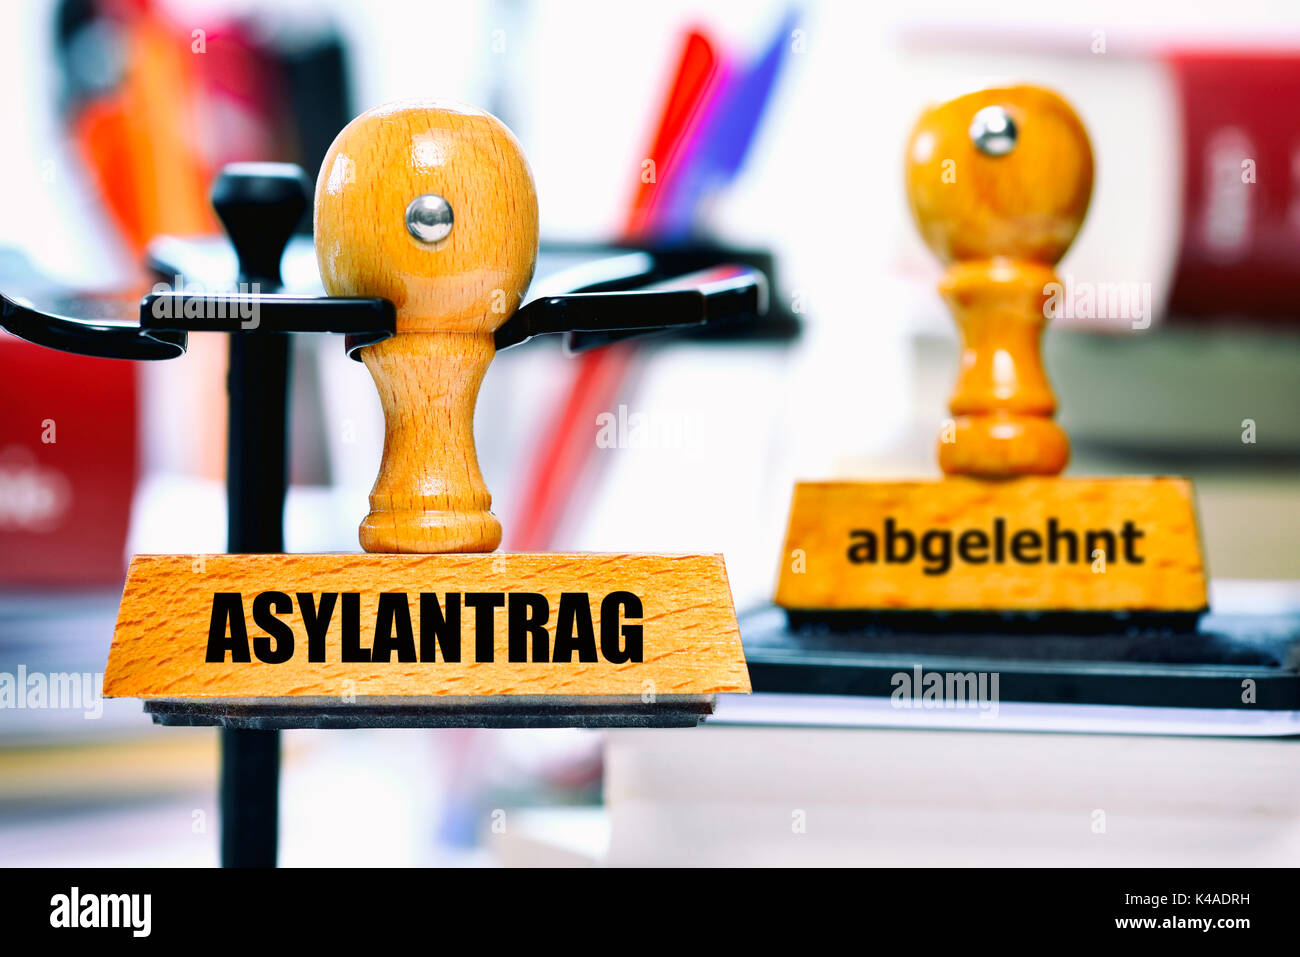 Application For Asylum And Rejected Stamp - Stock Image